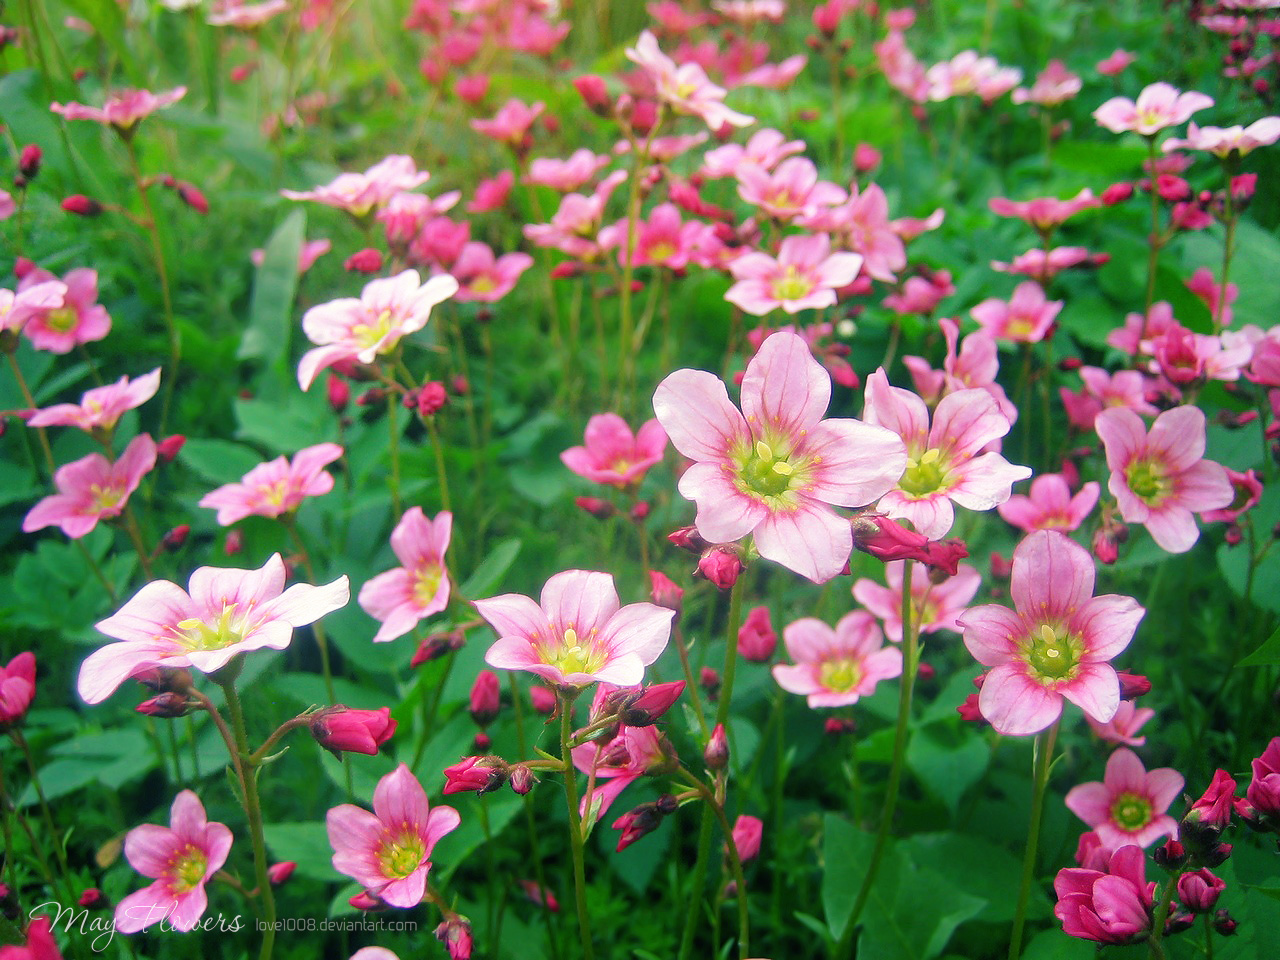 May Flowers 1 by love1008 on DeviantArt